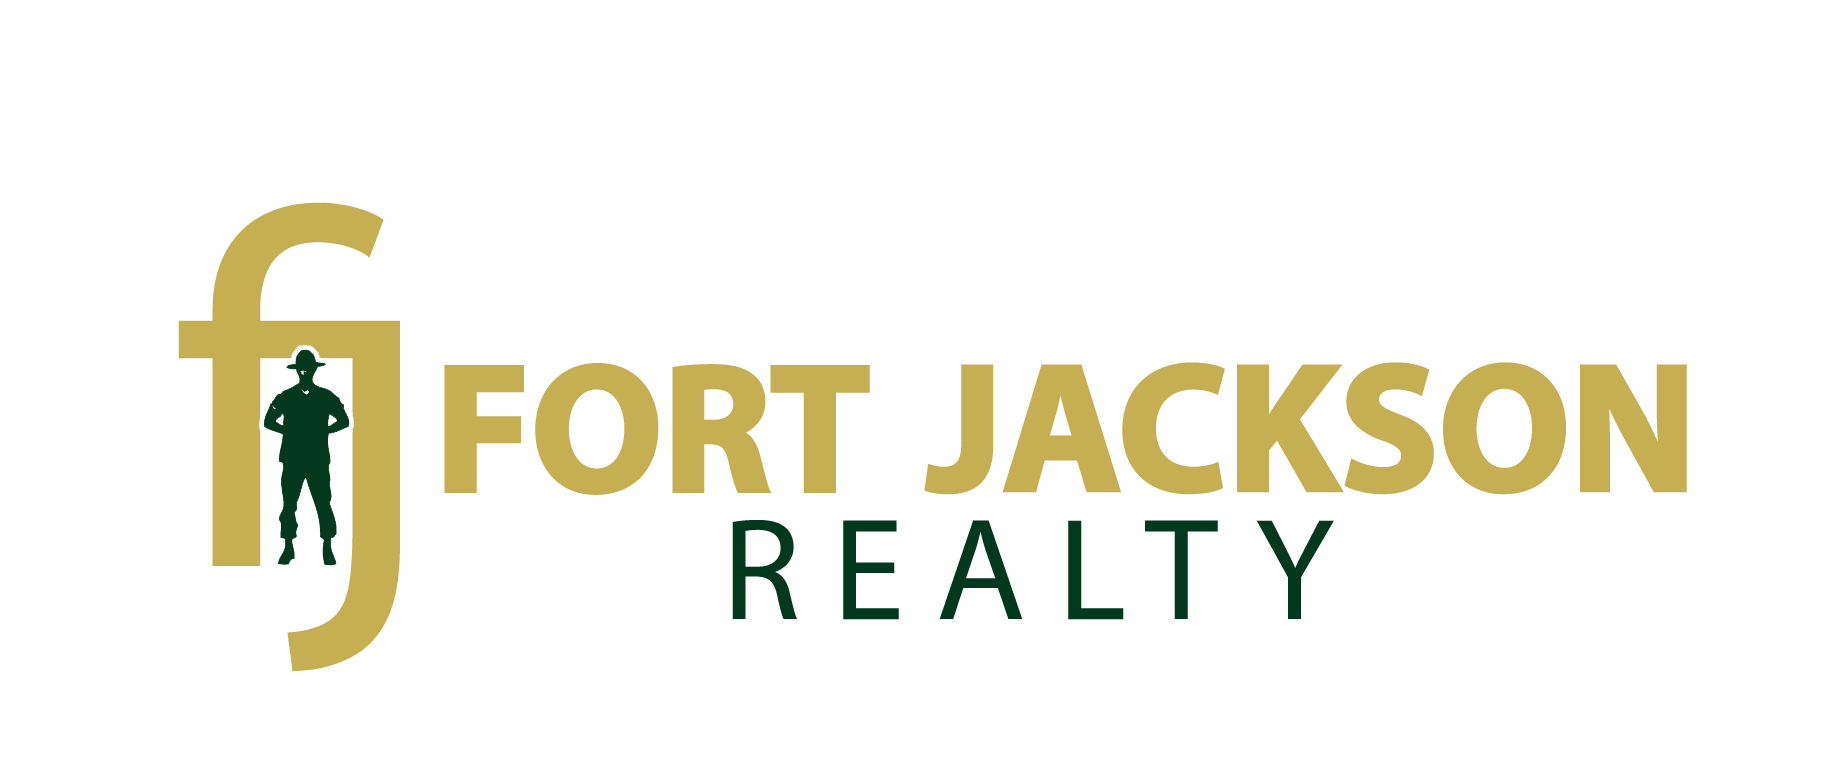 Fort Jackson Realty